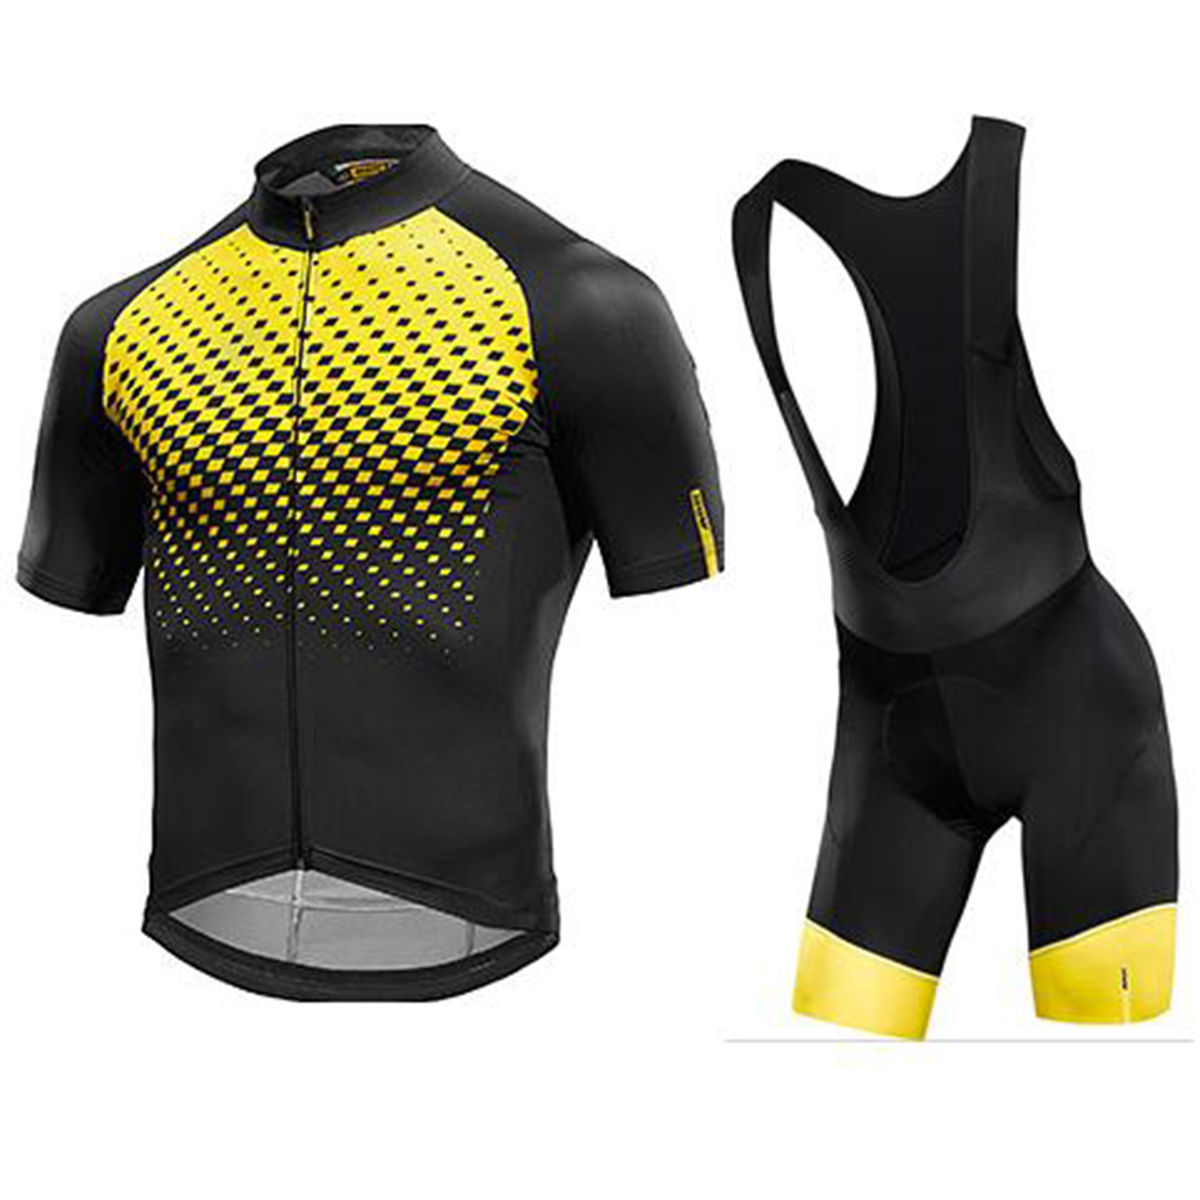 2018 Quick Dry Mavic Bicycle Bike MTB Jacket Cycling Short sleeve Jerseys Clothing/Clothes Pants Bib Sportswear Roupa Ciclismo